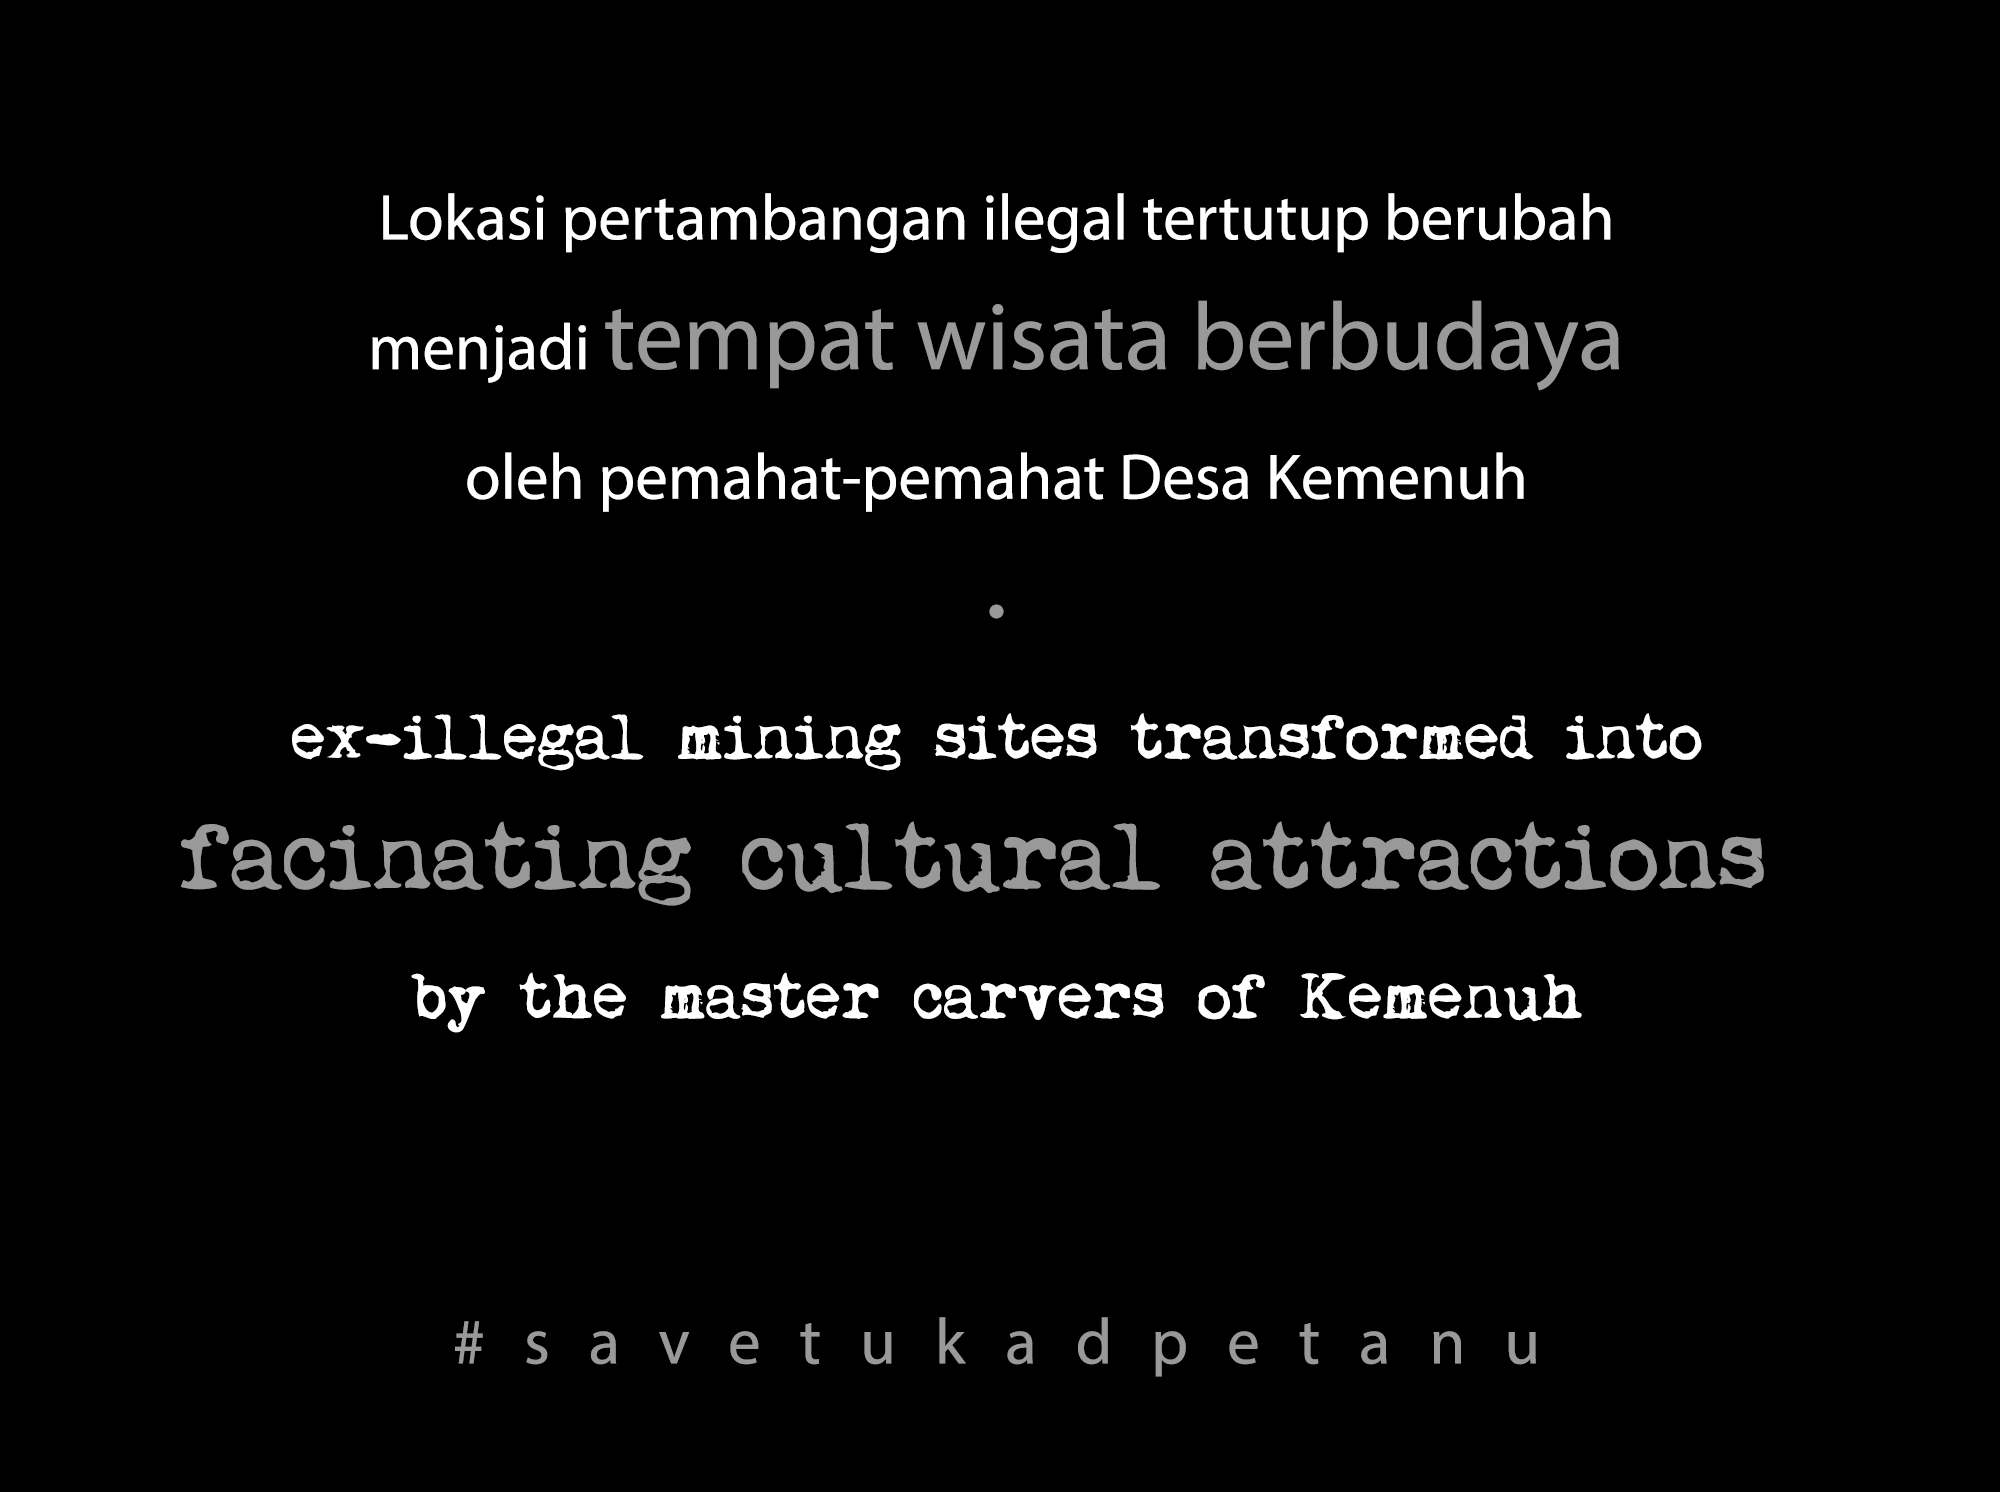 carving walls #savetukadpetanu